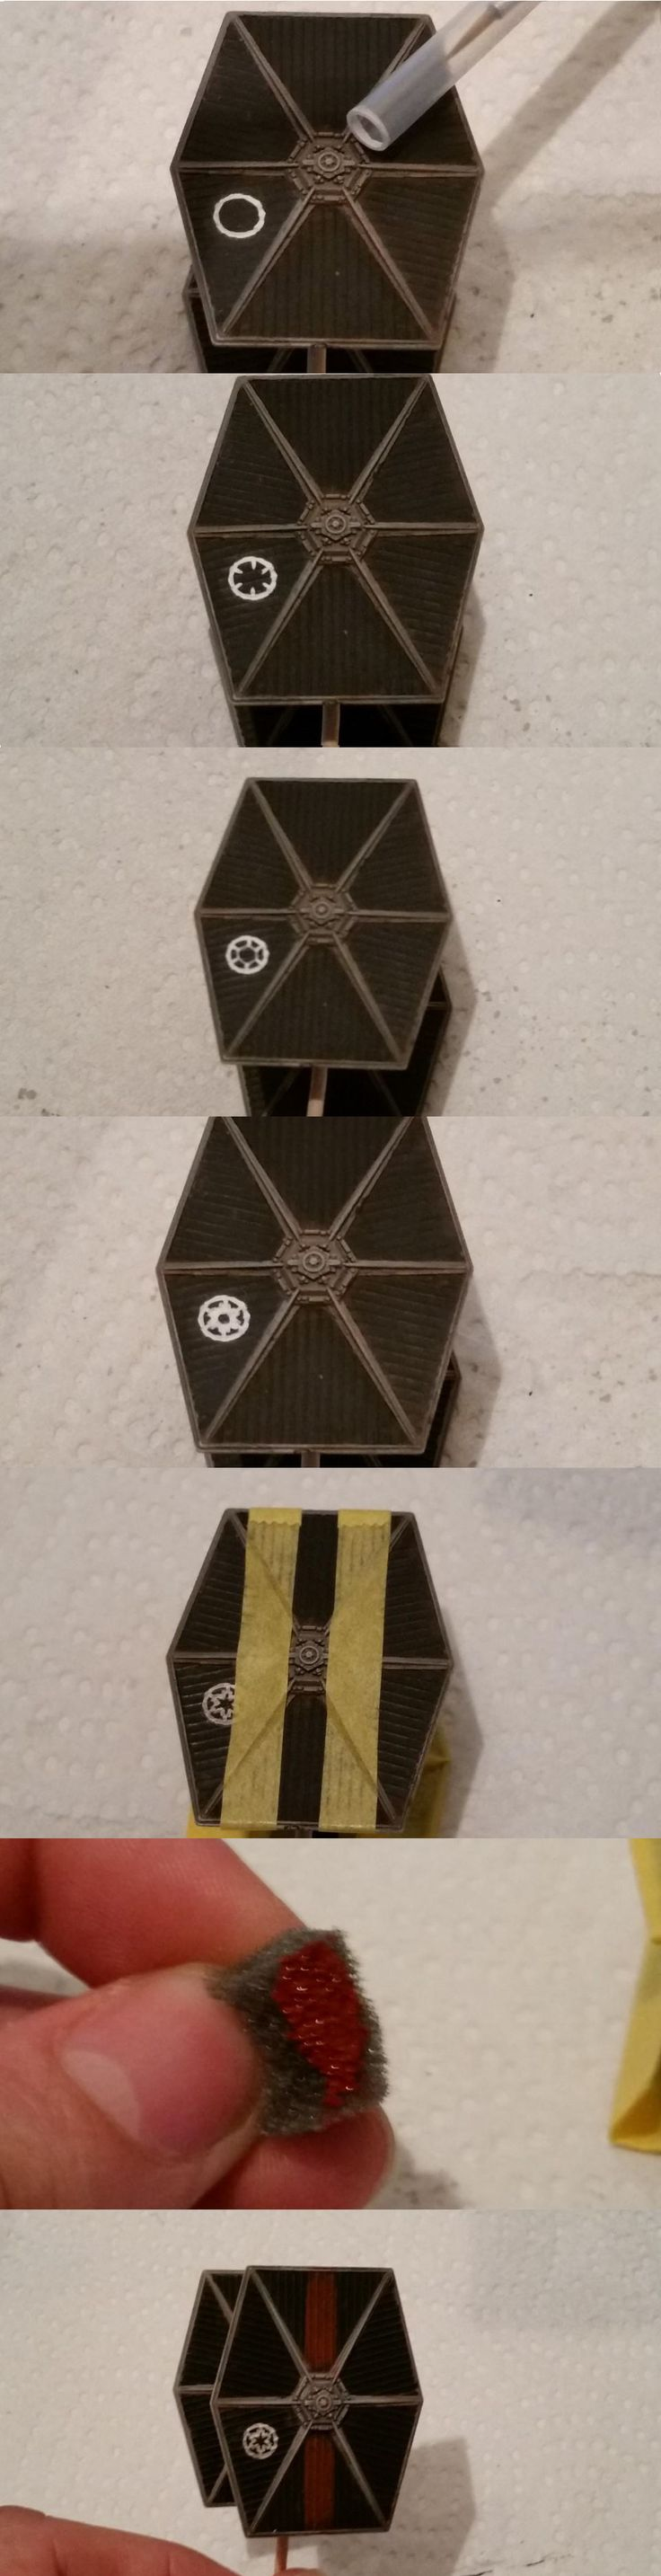 Tie Fighter tutorial by FearGFX on FFG forums http://community.fantasyflightgames.com/index.php?/topic/114424-how-to-paint-imperial-markings-on-a-tie-fighter/